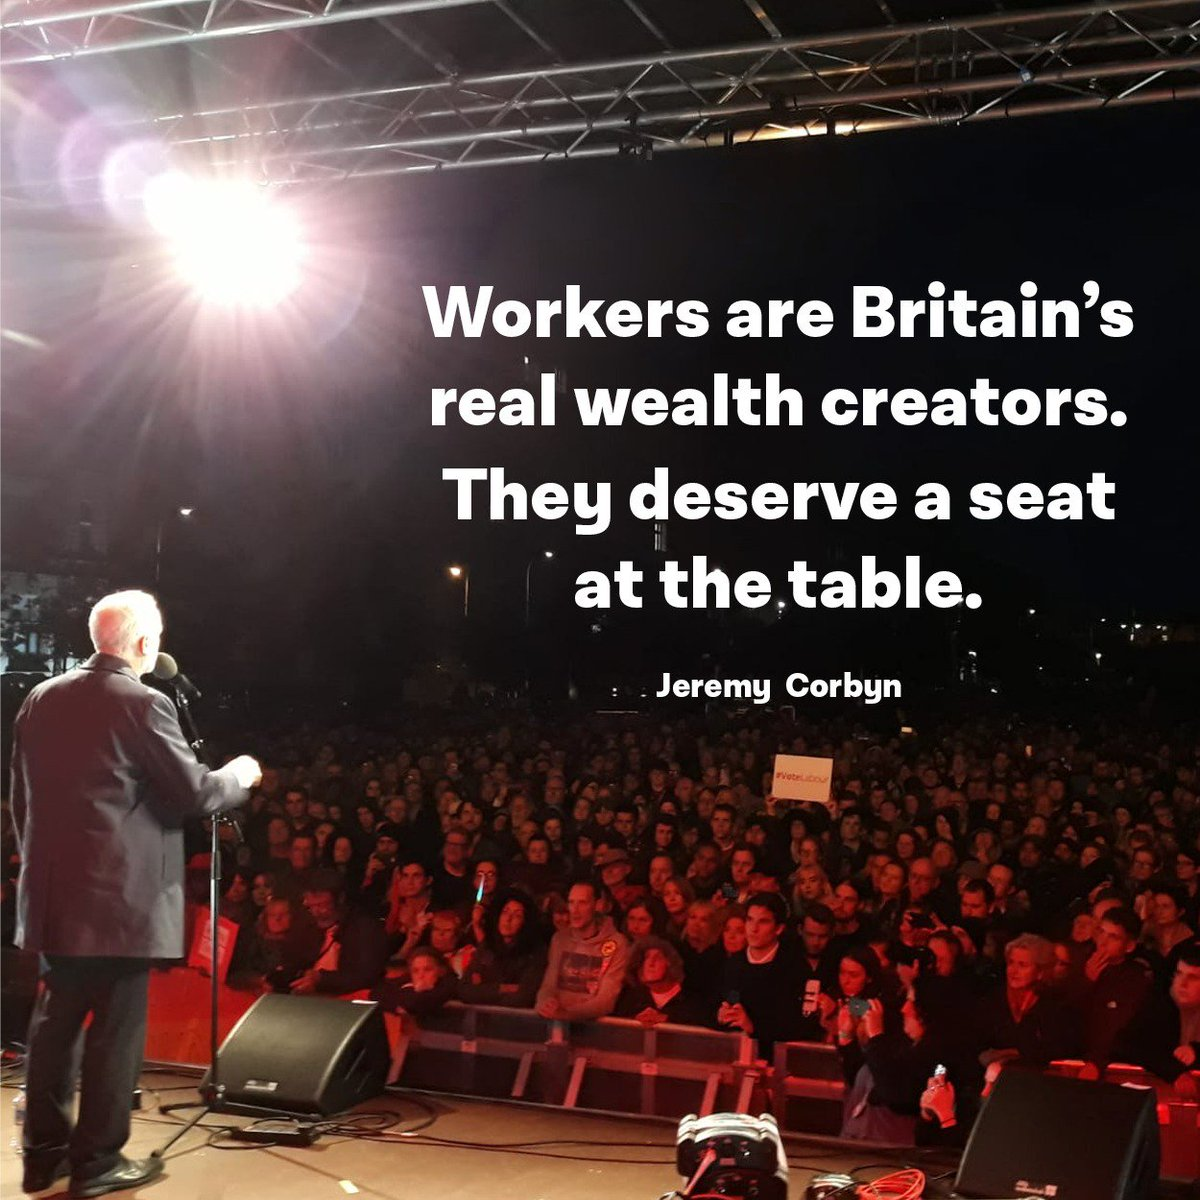 Productivity lags behind other countries, pay has fallen and job insecurity has risen.  Simply, the current system isn't working except for the privileged few.  @UKLabour will start to turn this around by making businesses reserve a third of board seats for workers. #Lab18